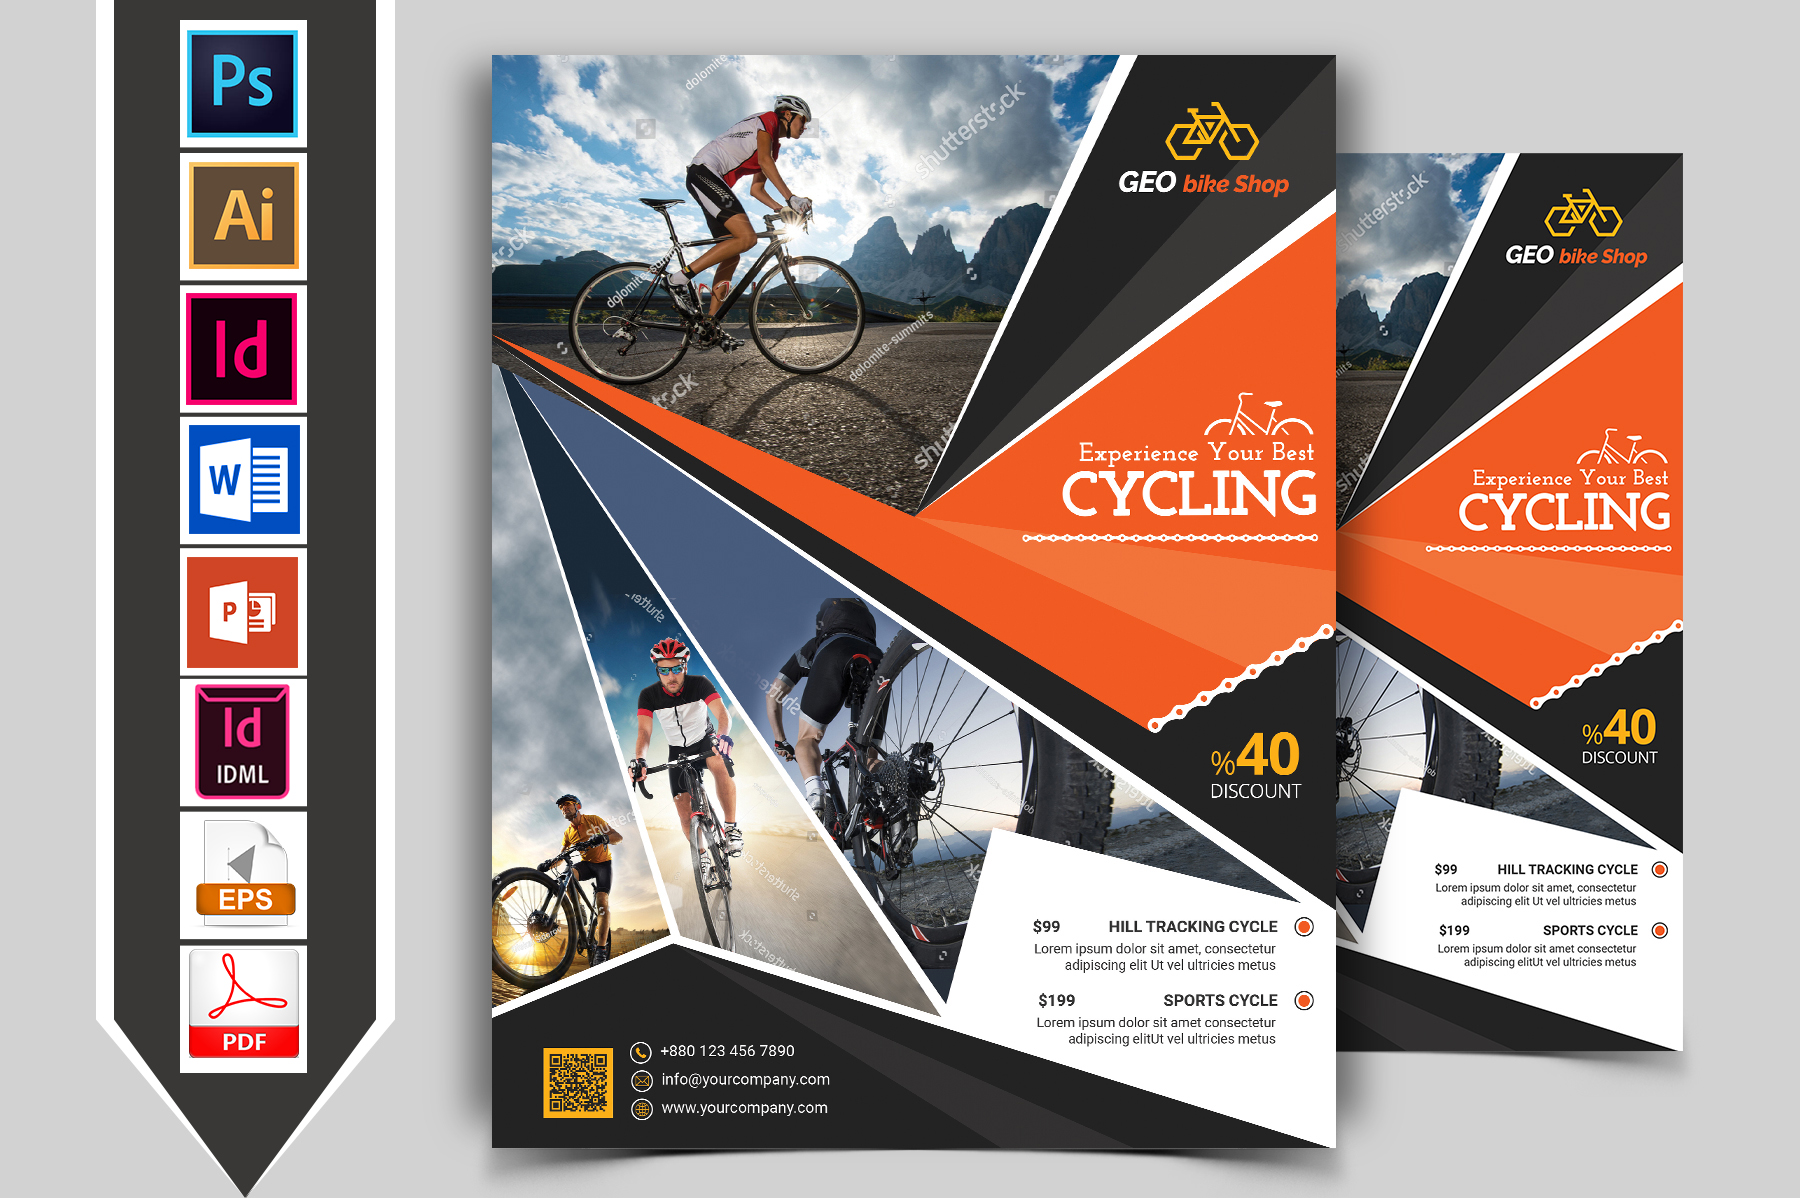 Cycle Shop Flyer Template Vol-03 example image 1